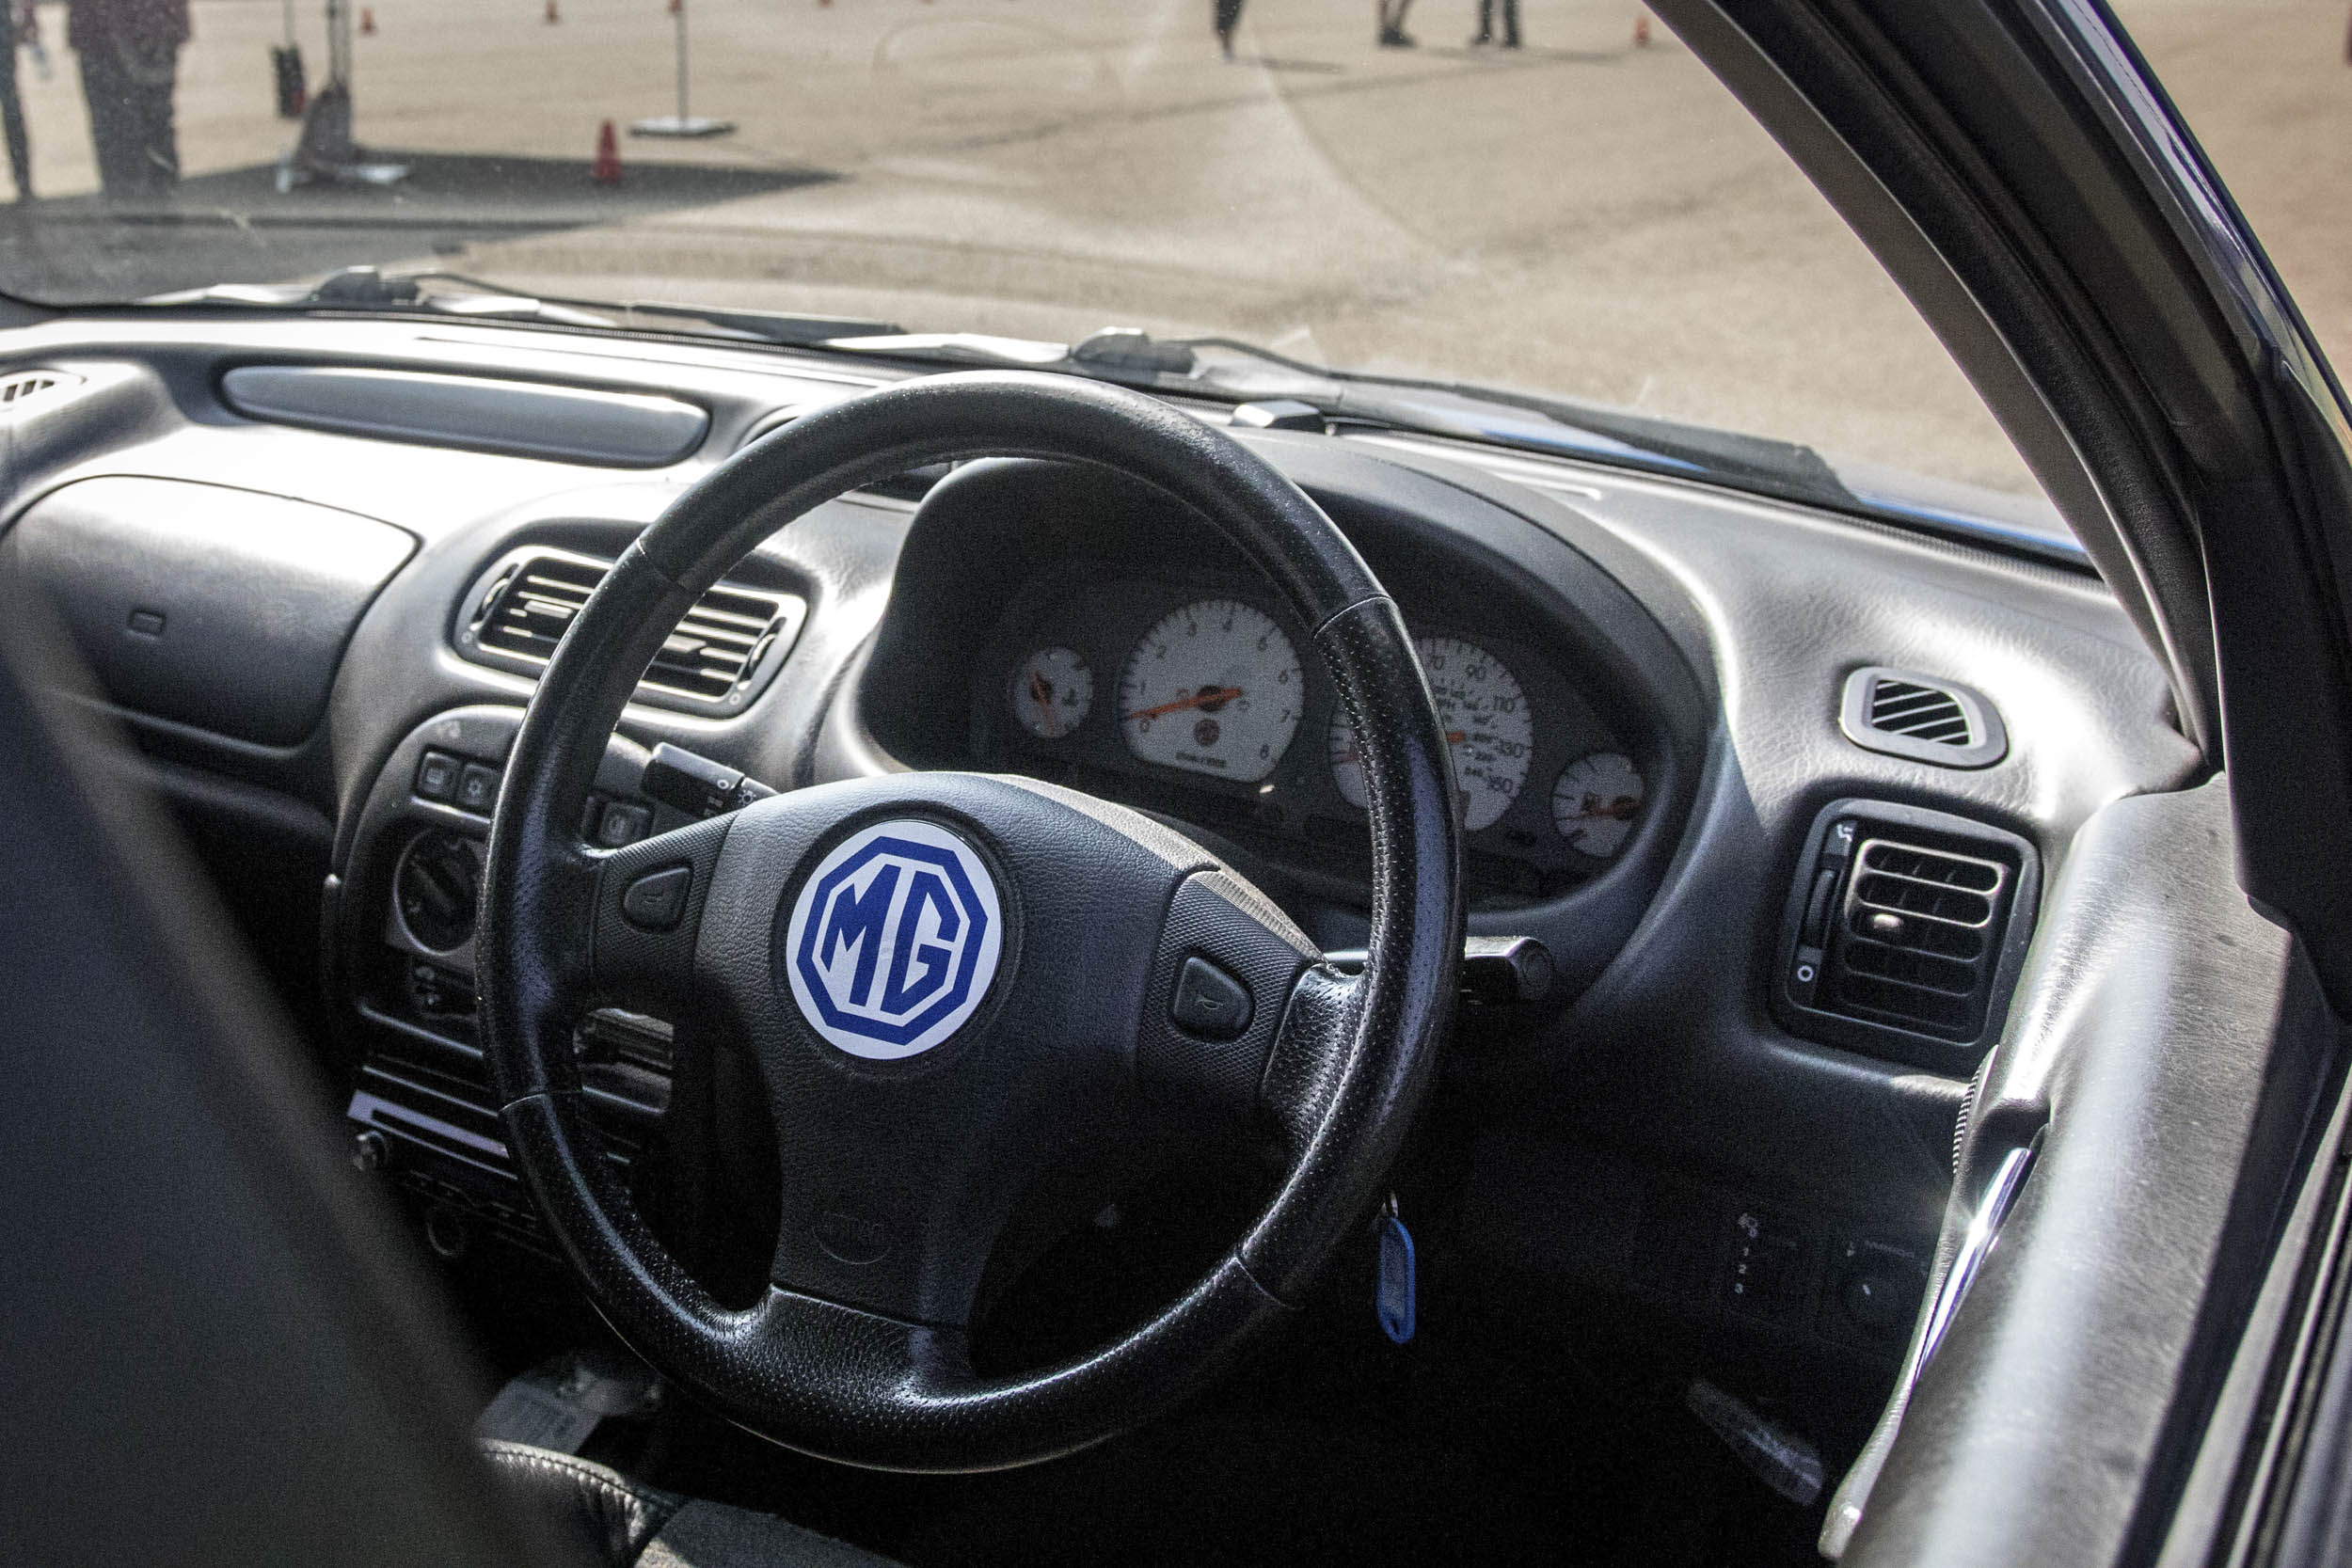 MG ZR 160 steering wheel